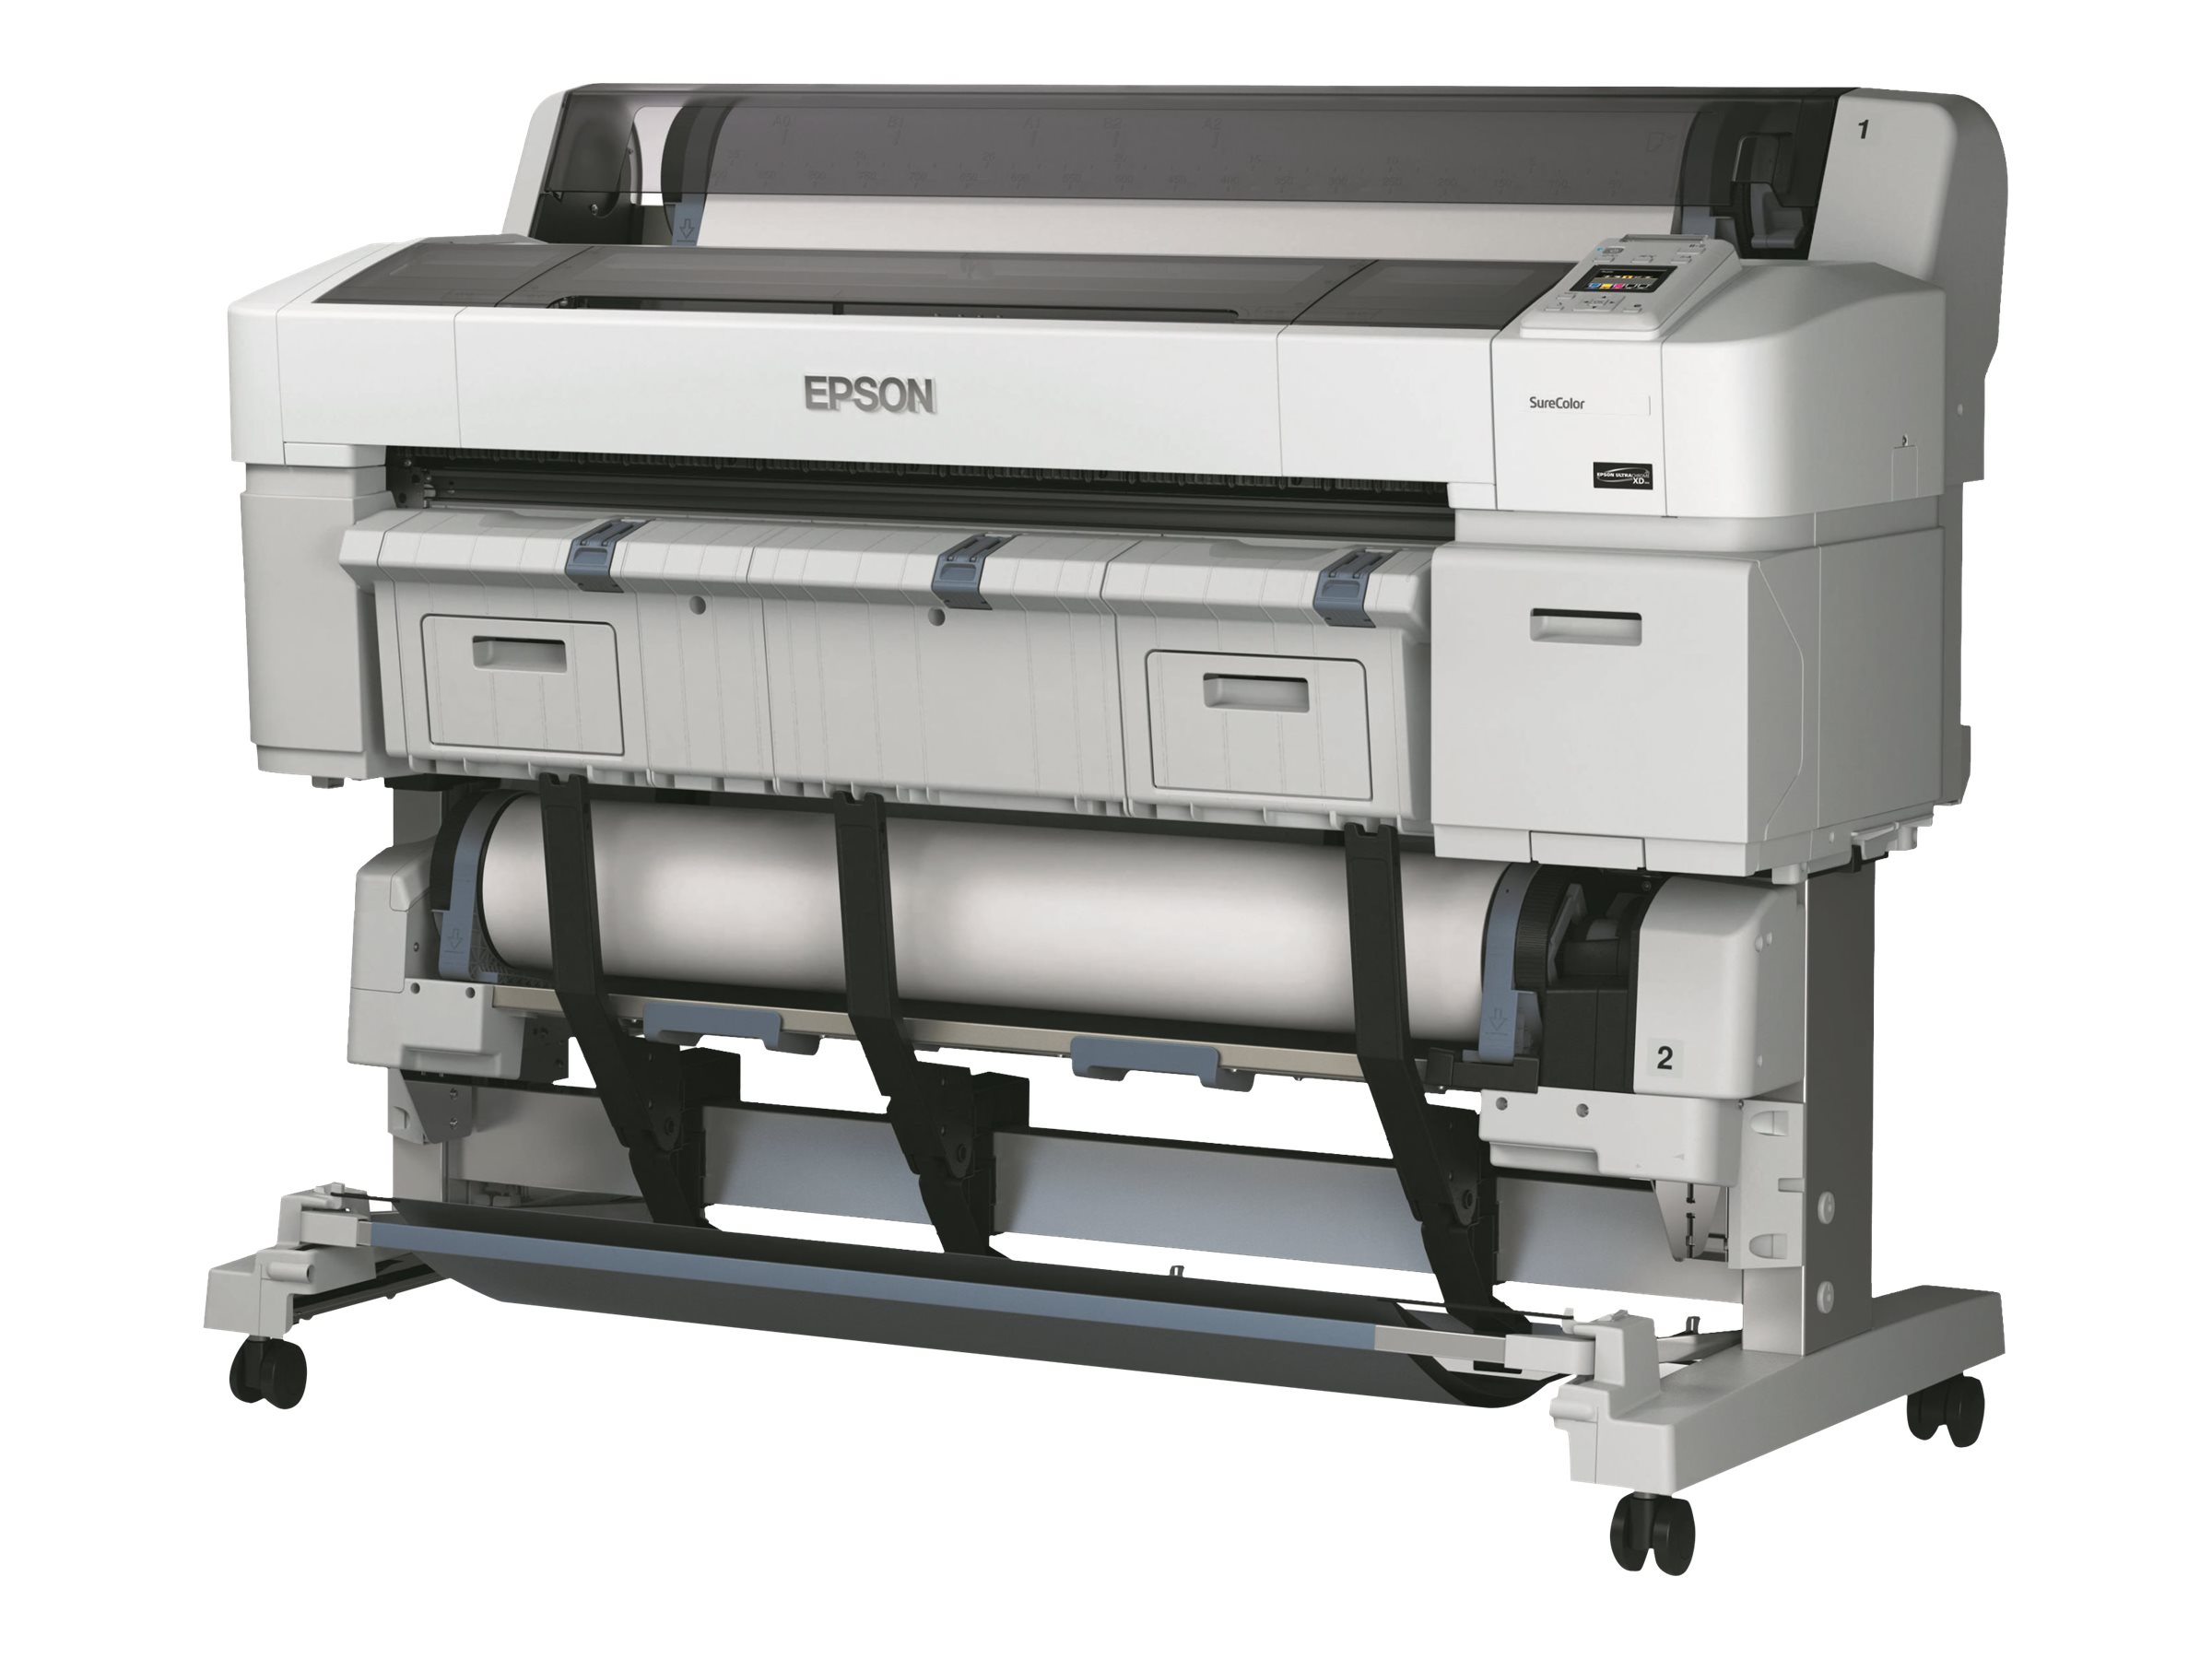 Epson SureColor SC-T5200D-PS - 914 mm (36